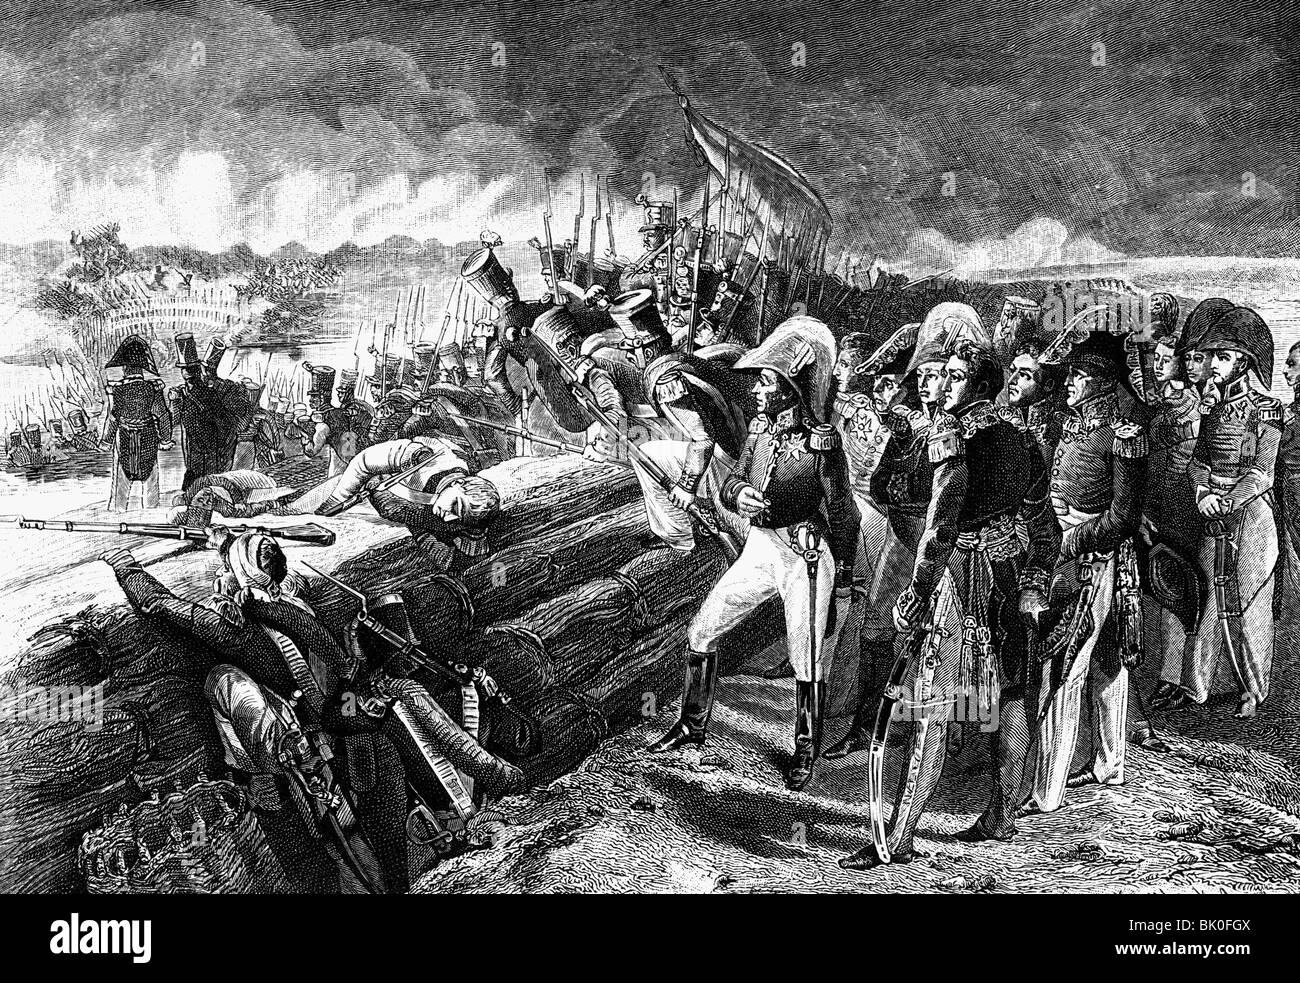 geography / travel, Spain, revolution 1820 - 1823, French intervention,  storming of the Trocadero, Cadiz, 30.8.1823, wood engraving, 19th century,  ...